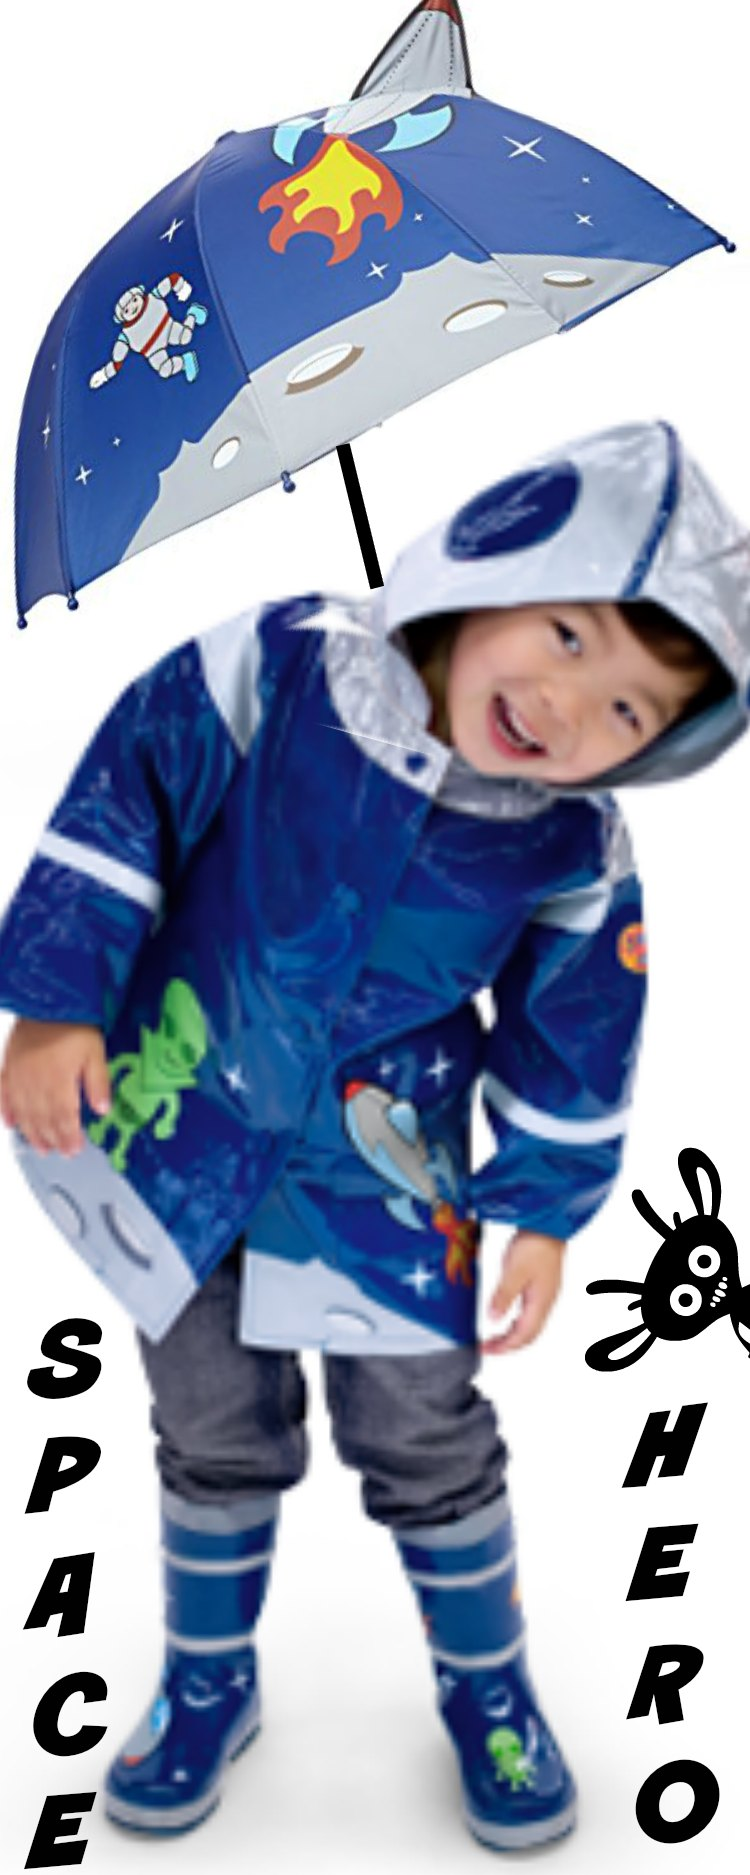 Pirate Children Raincoats with Matching Boots